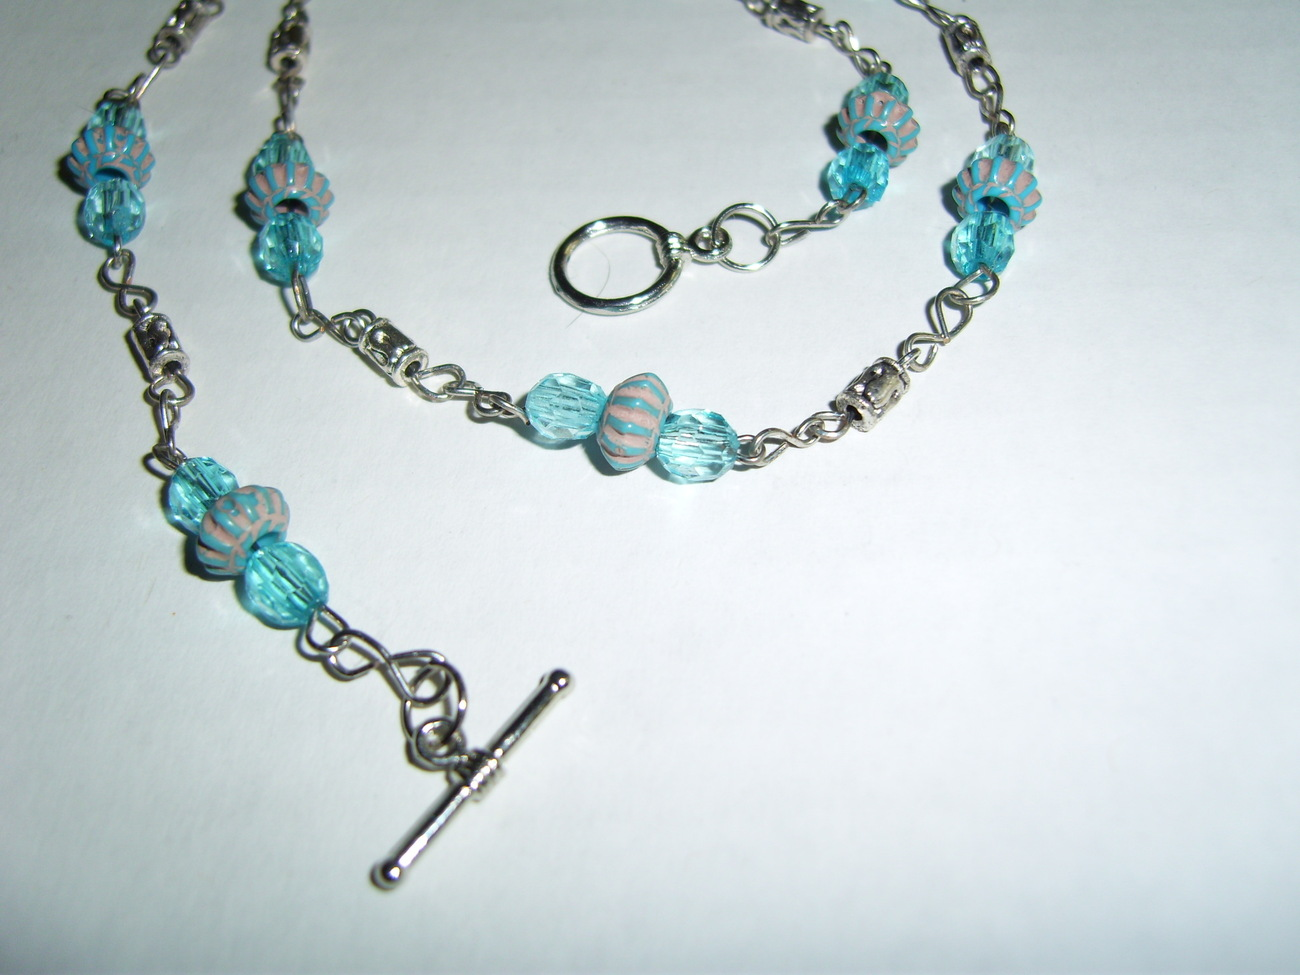 Handmade blue beaded necklace